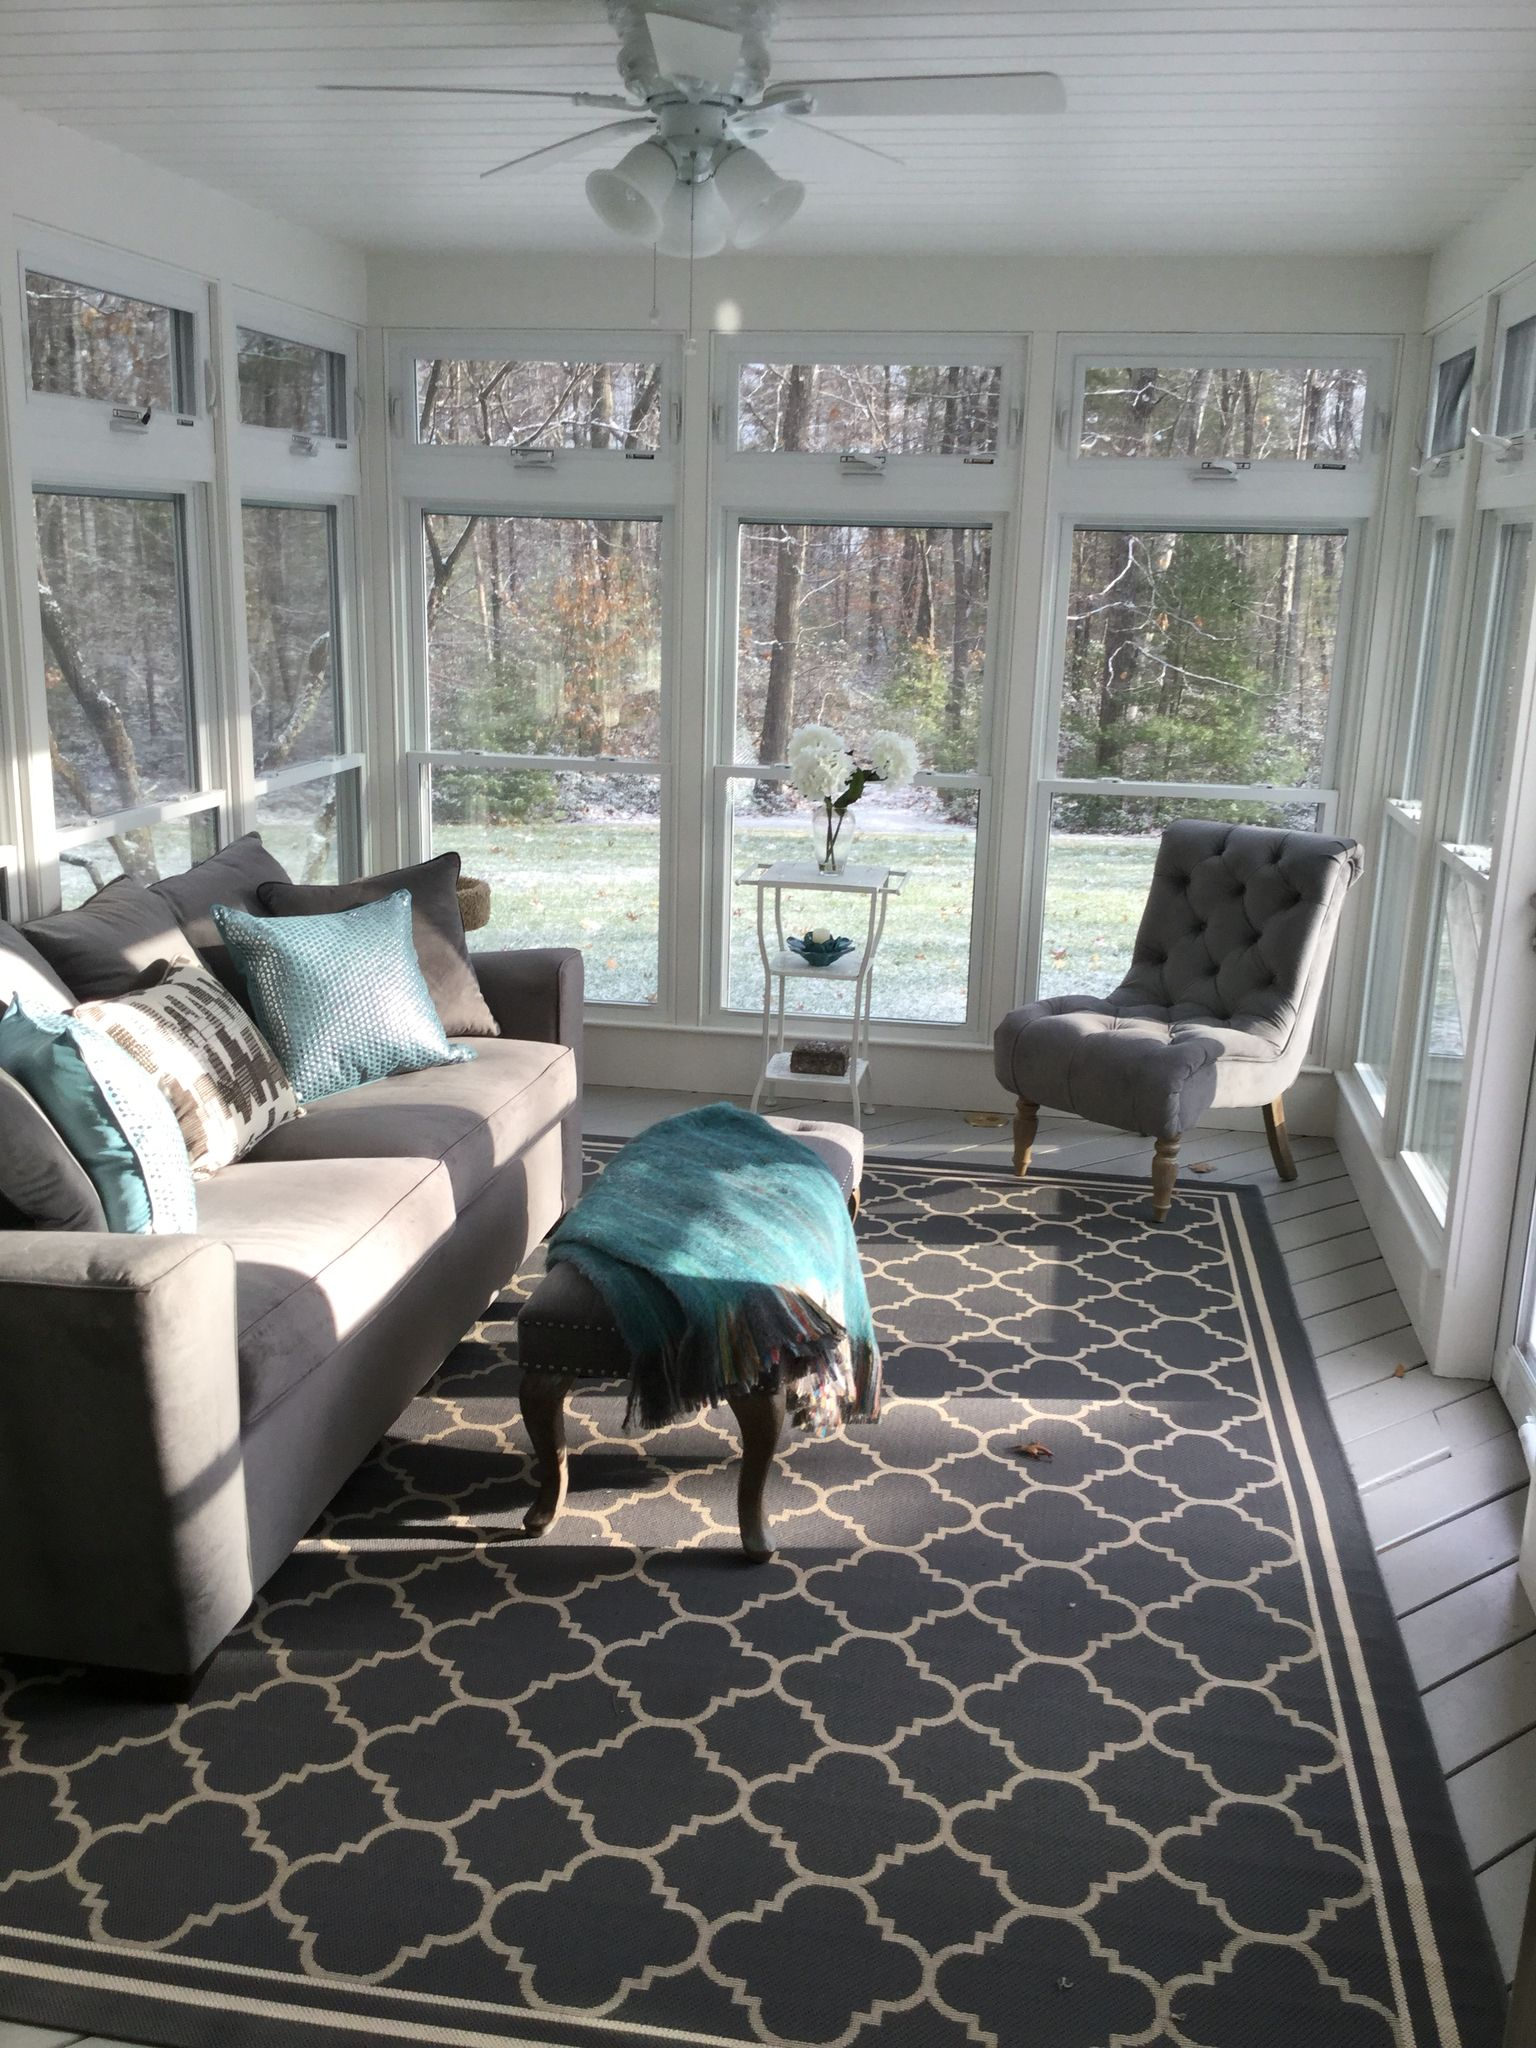 Converted A Brown Screened In Porch To This 3 Season Sanctuary House With Porch Sunroom Decorating Porch Furniture